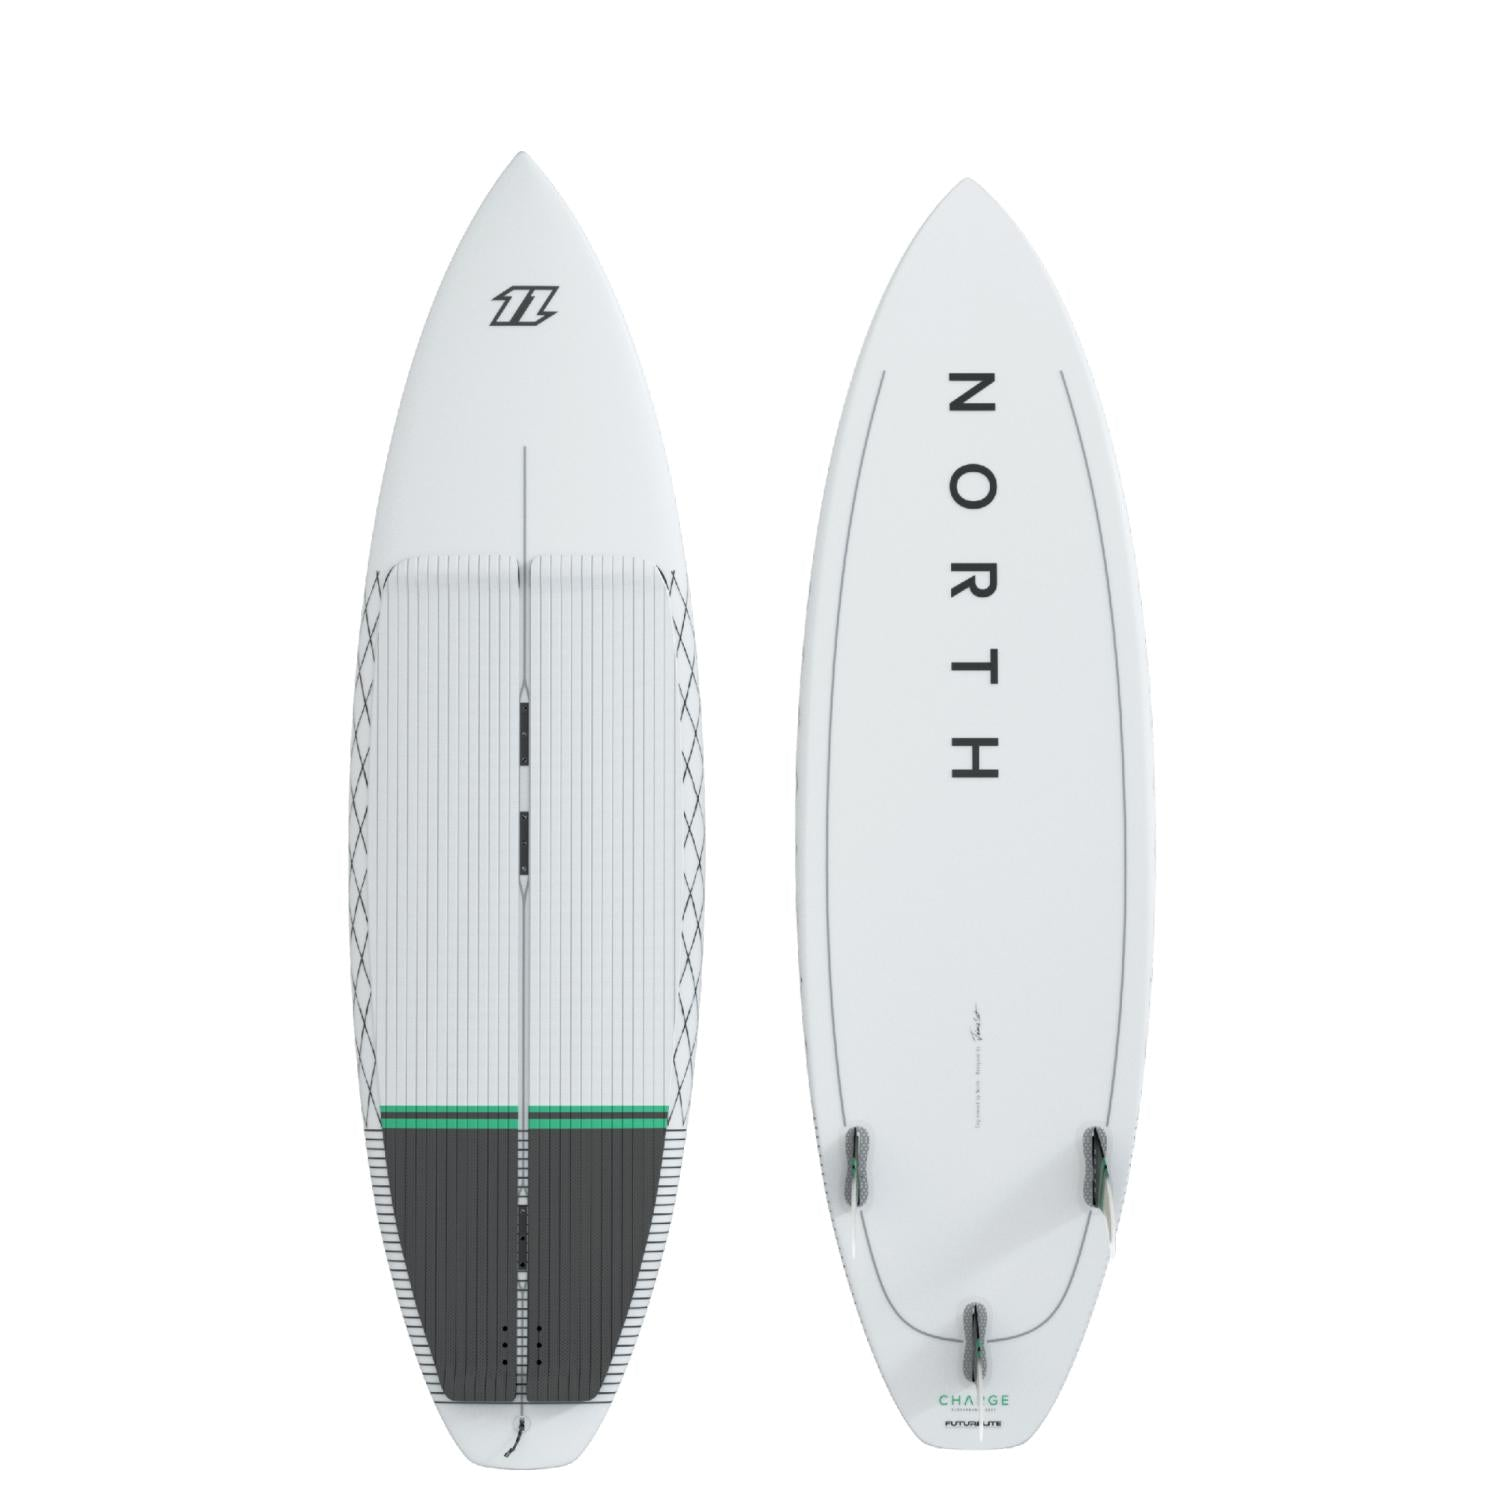 2021 North Charge Kite Surfboard-Big Winds